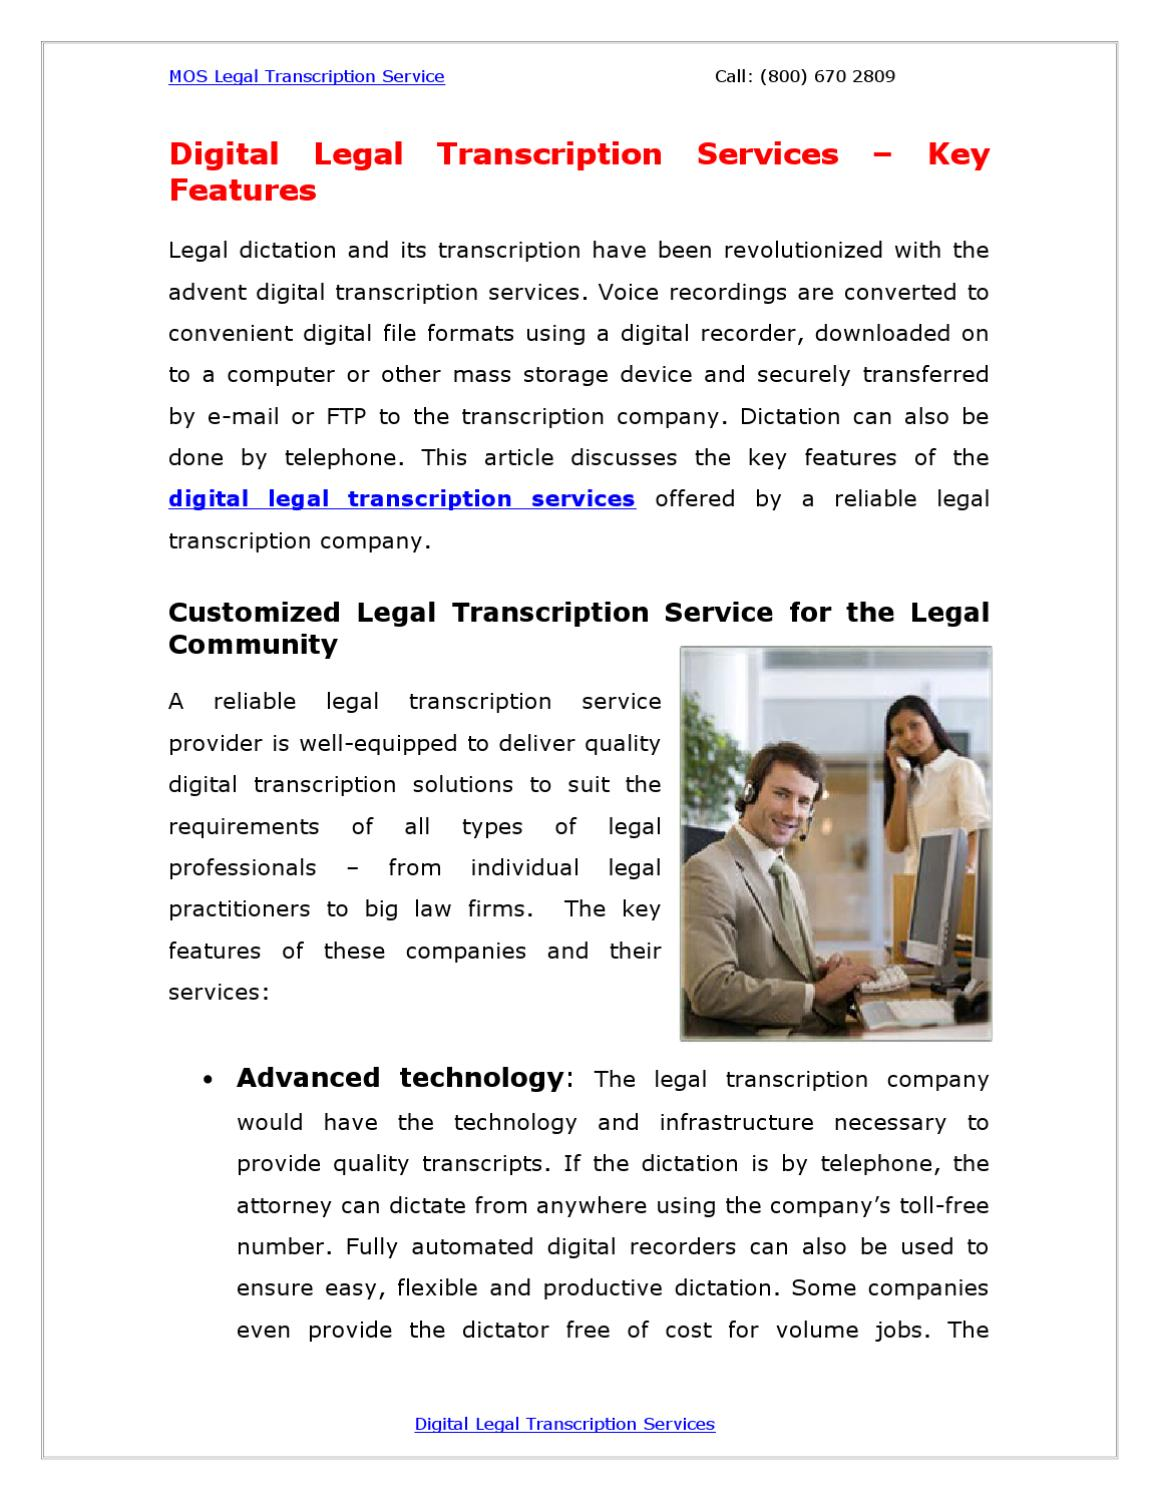 Digital Legal Transcription Services – Key Features by Bob